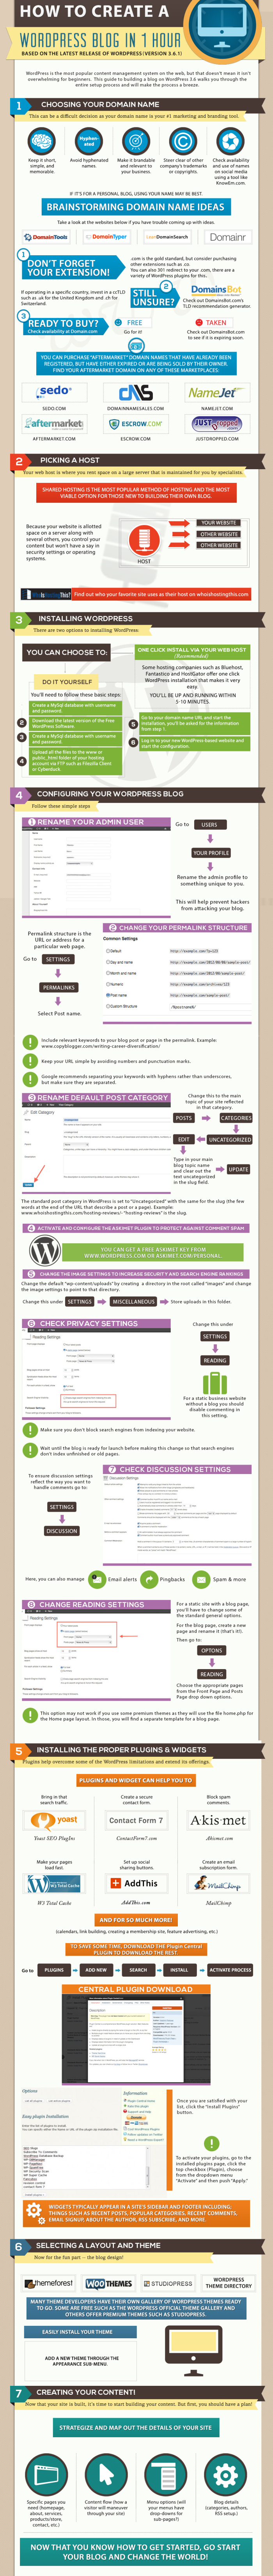 How to Create a WordPress Blog in 1 Hour [by Study Web -- via #tipsographic]. More at tipsographic.com